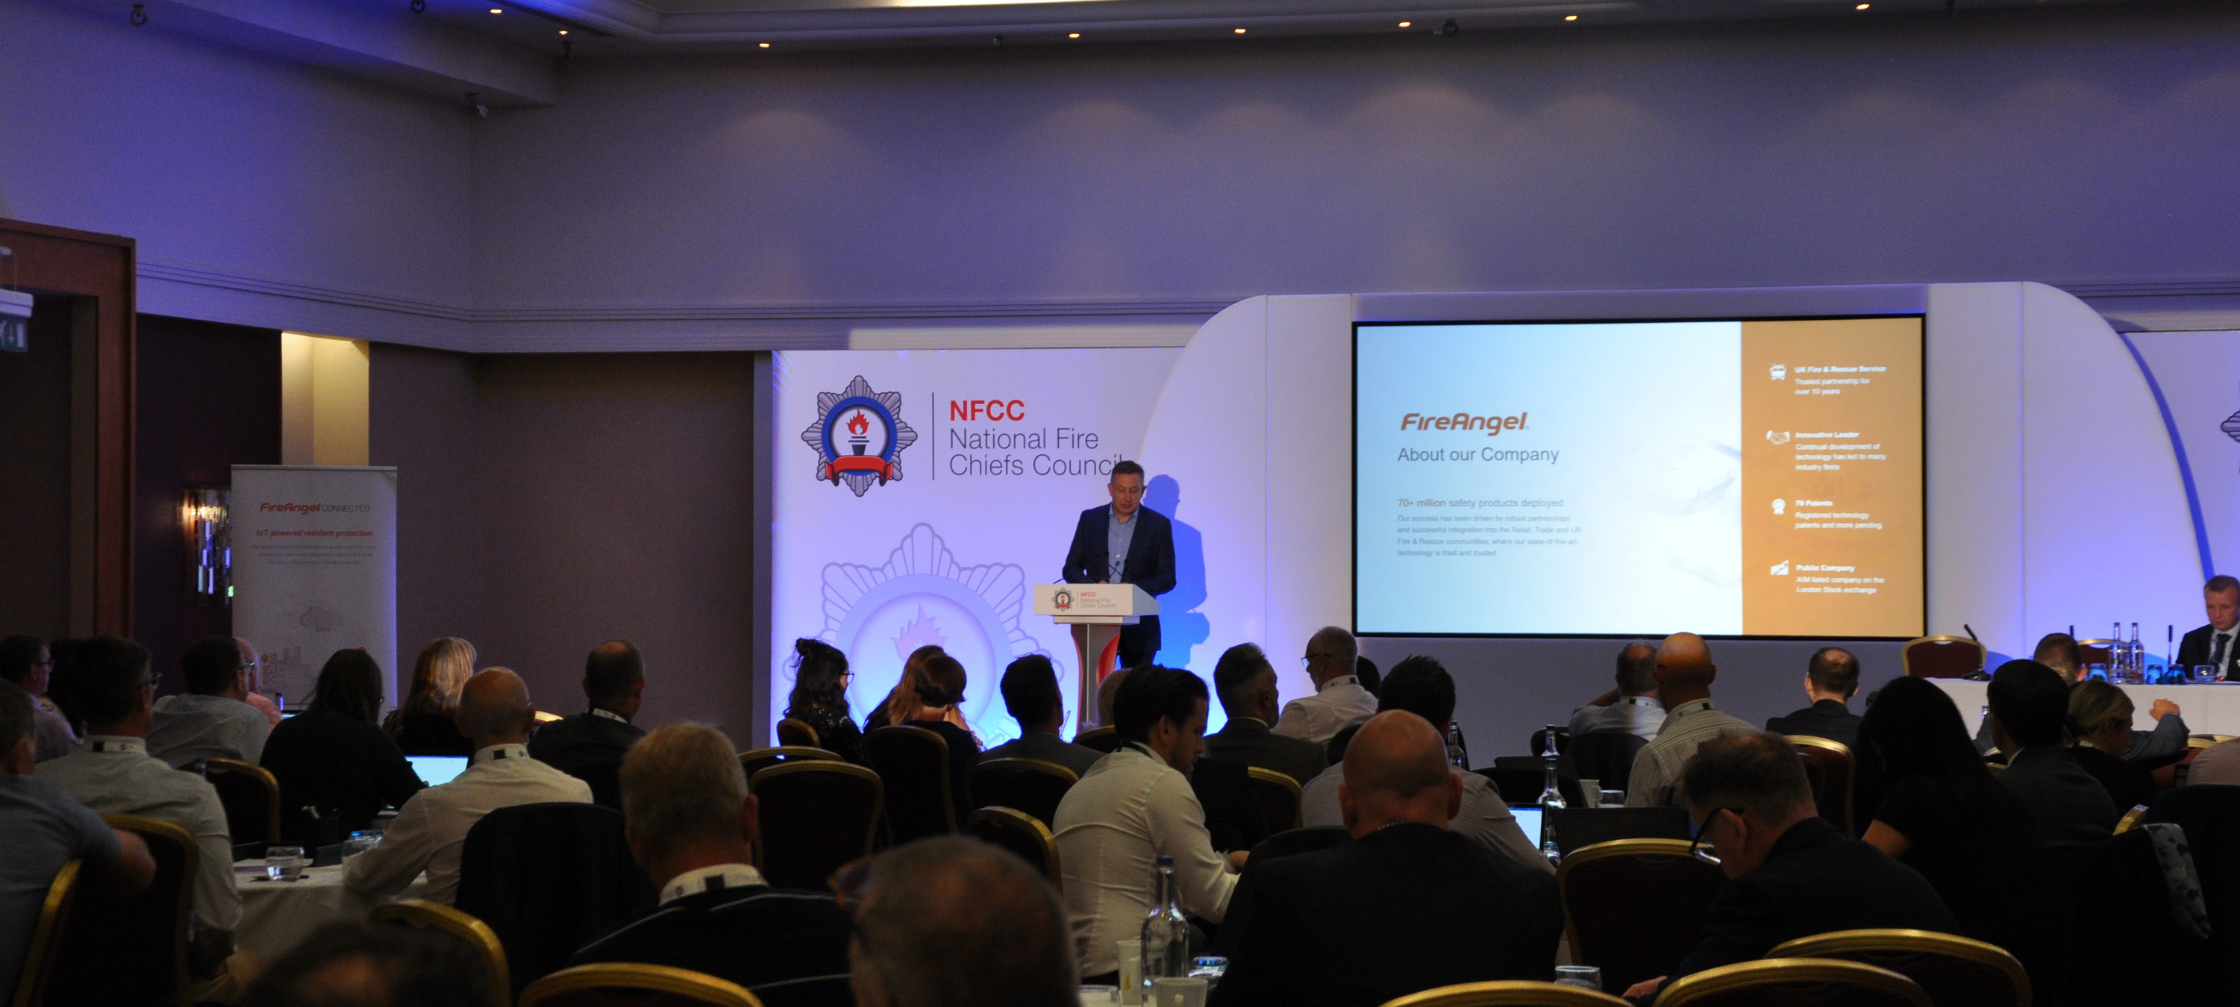 NFCC prevention and protection conference 2021